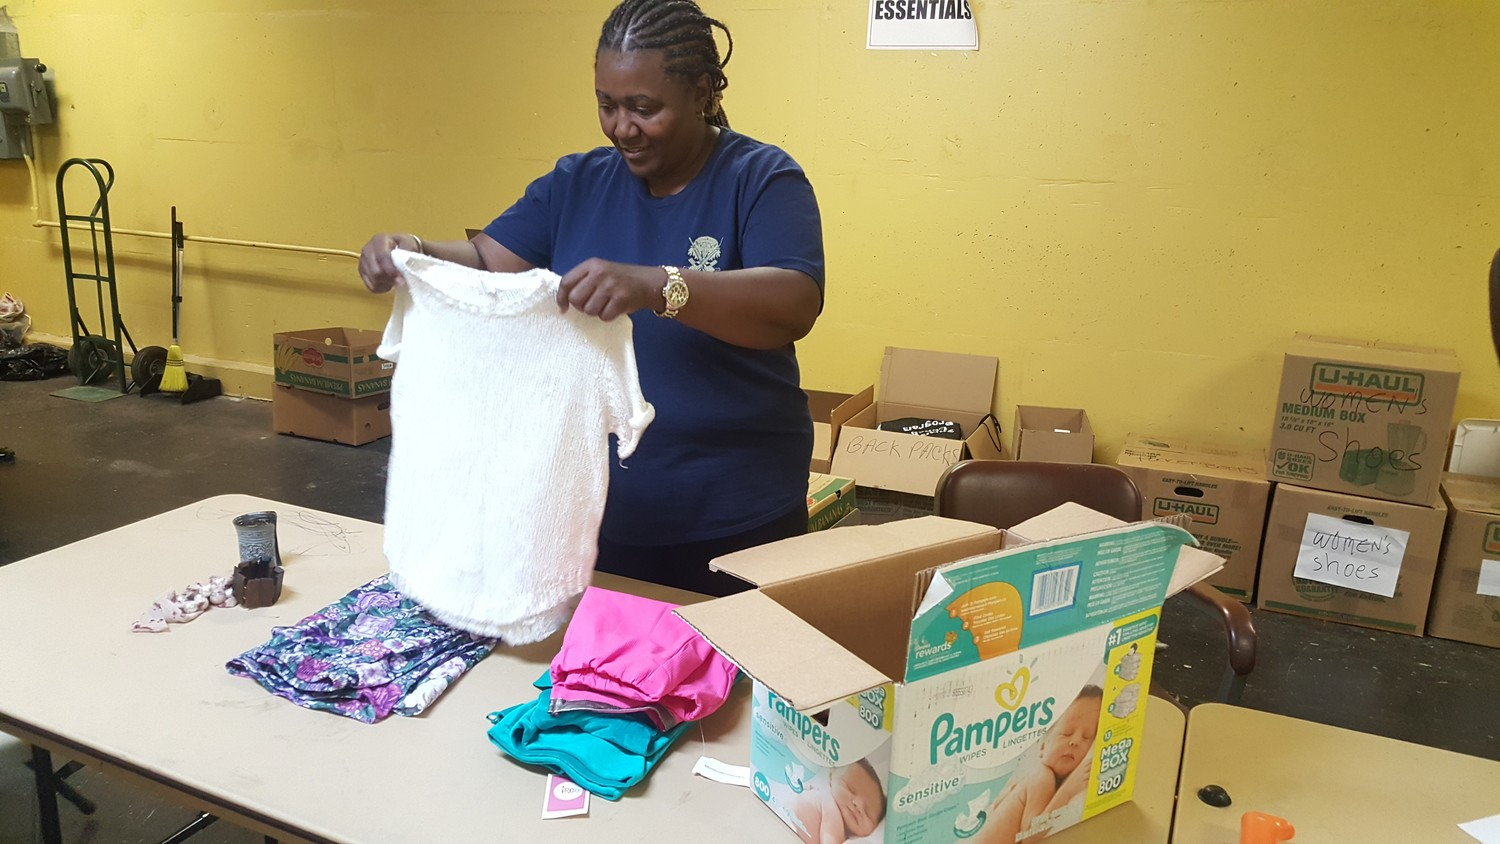 Volunteer Tracey Matthews sorted and folded clothing donations to be sent to Hurricane Harvey, Irma and Maria victims in Texas and the Caribbean.